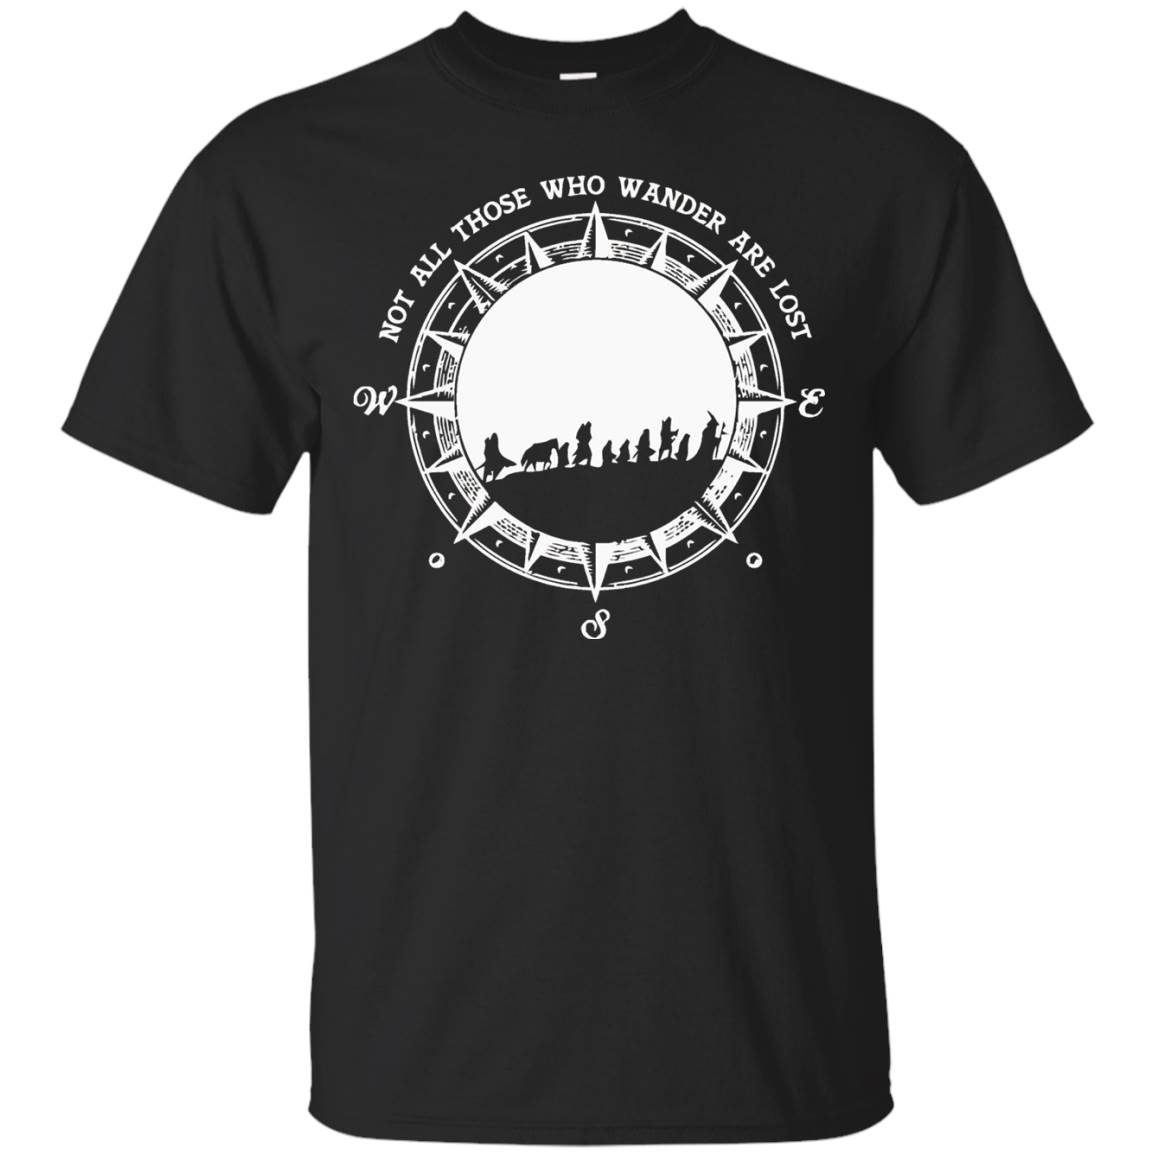 Not All Those Who Wander Are Lost – TShirt